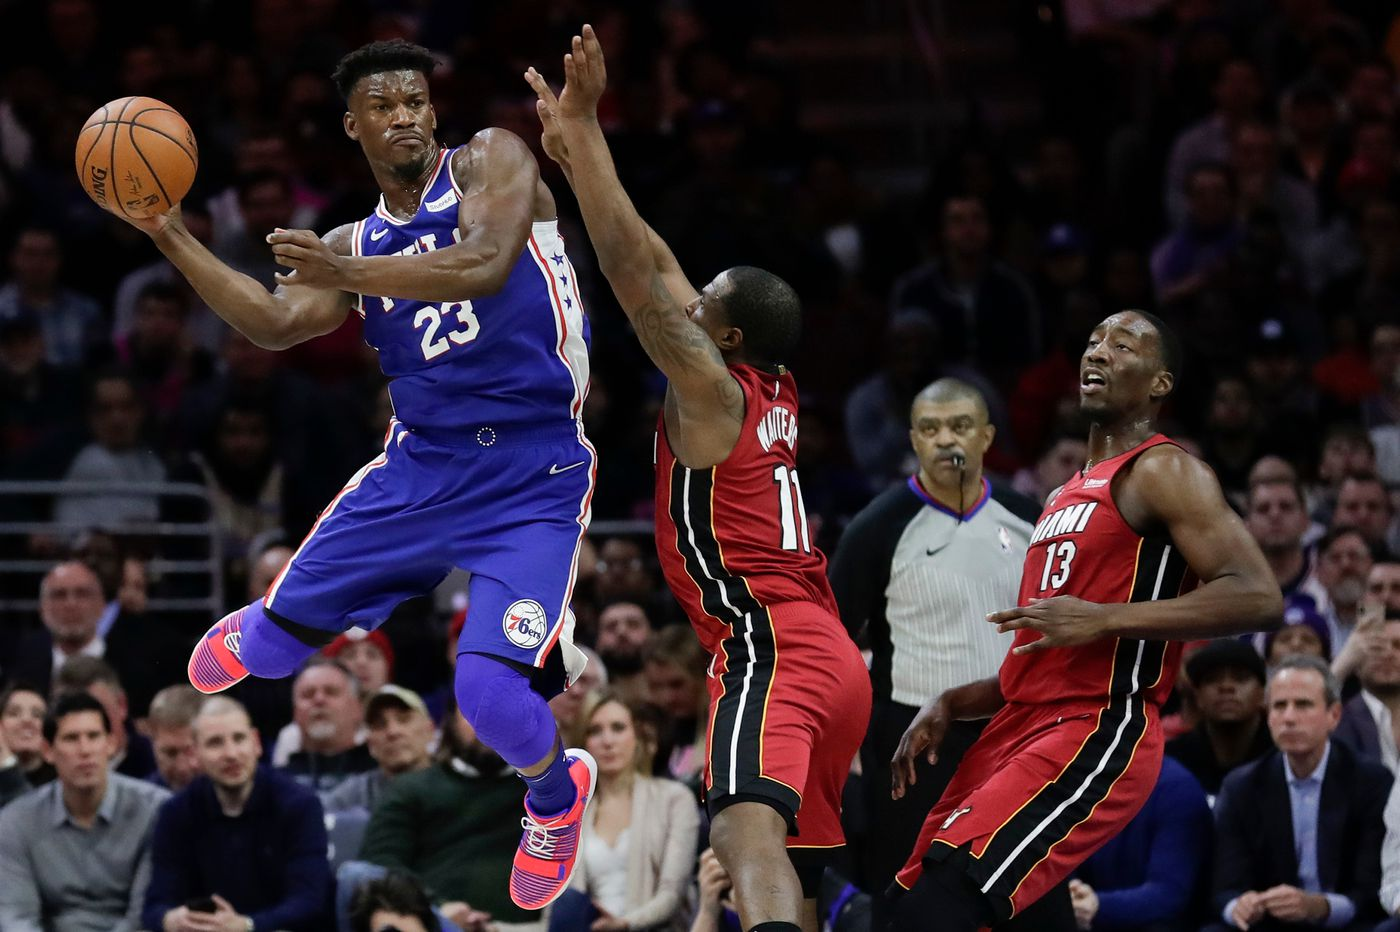 Sixers' Jimmy Butler is a 'franchise guy' because of his record in close games, agent says